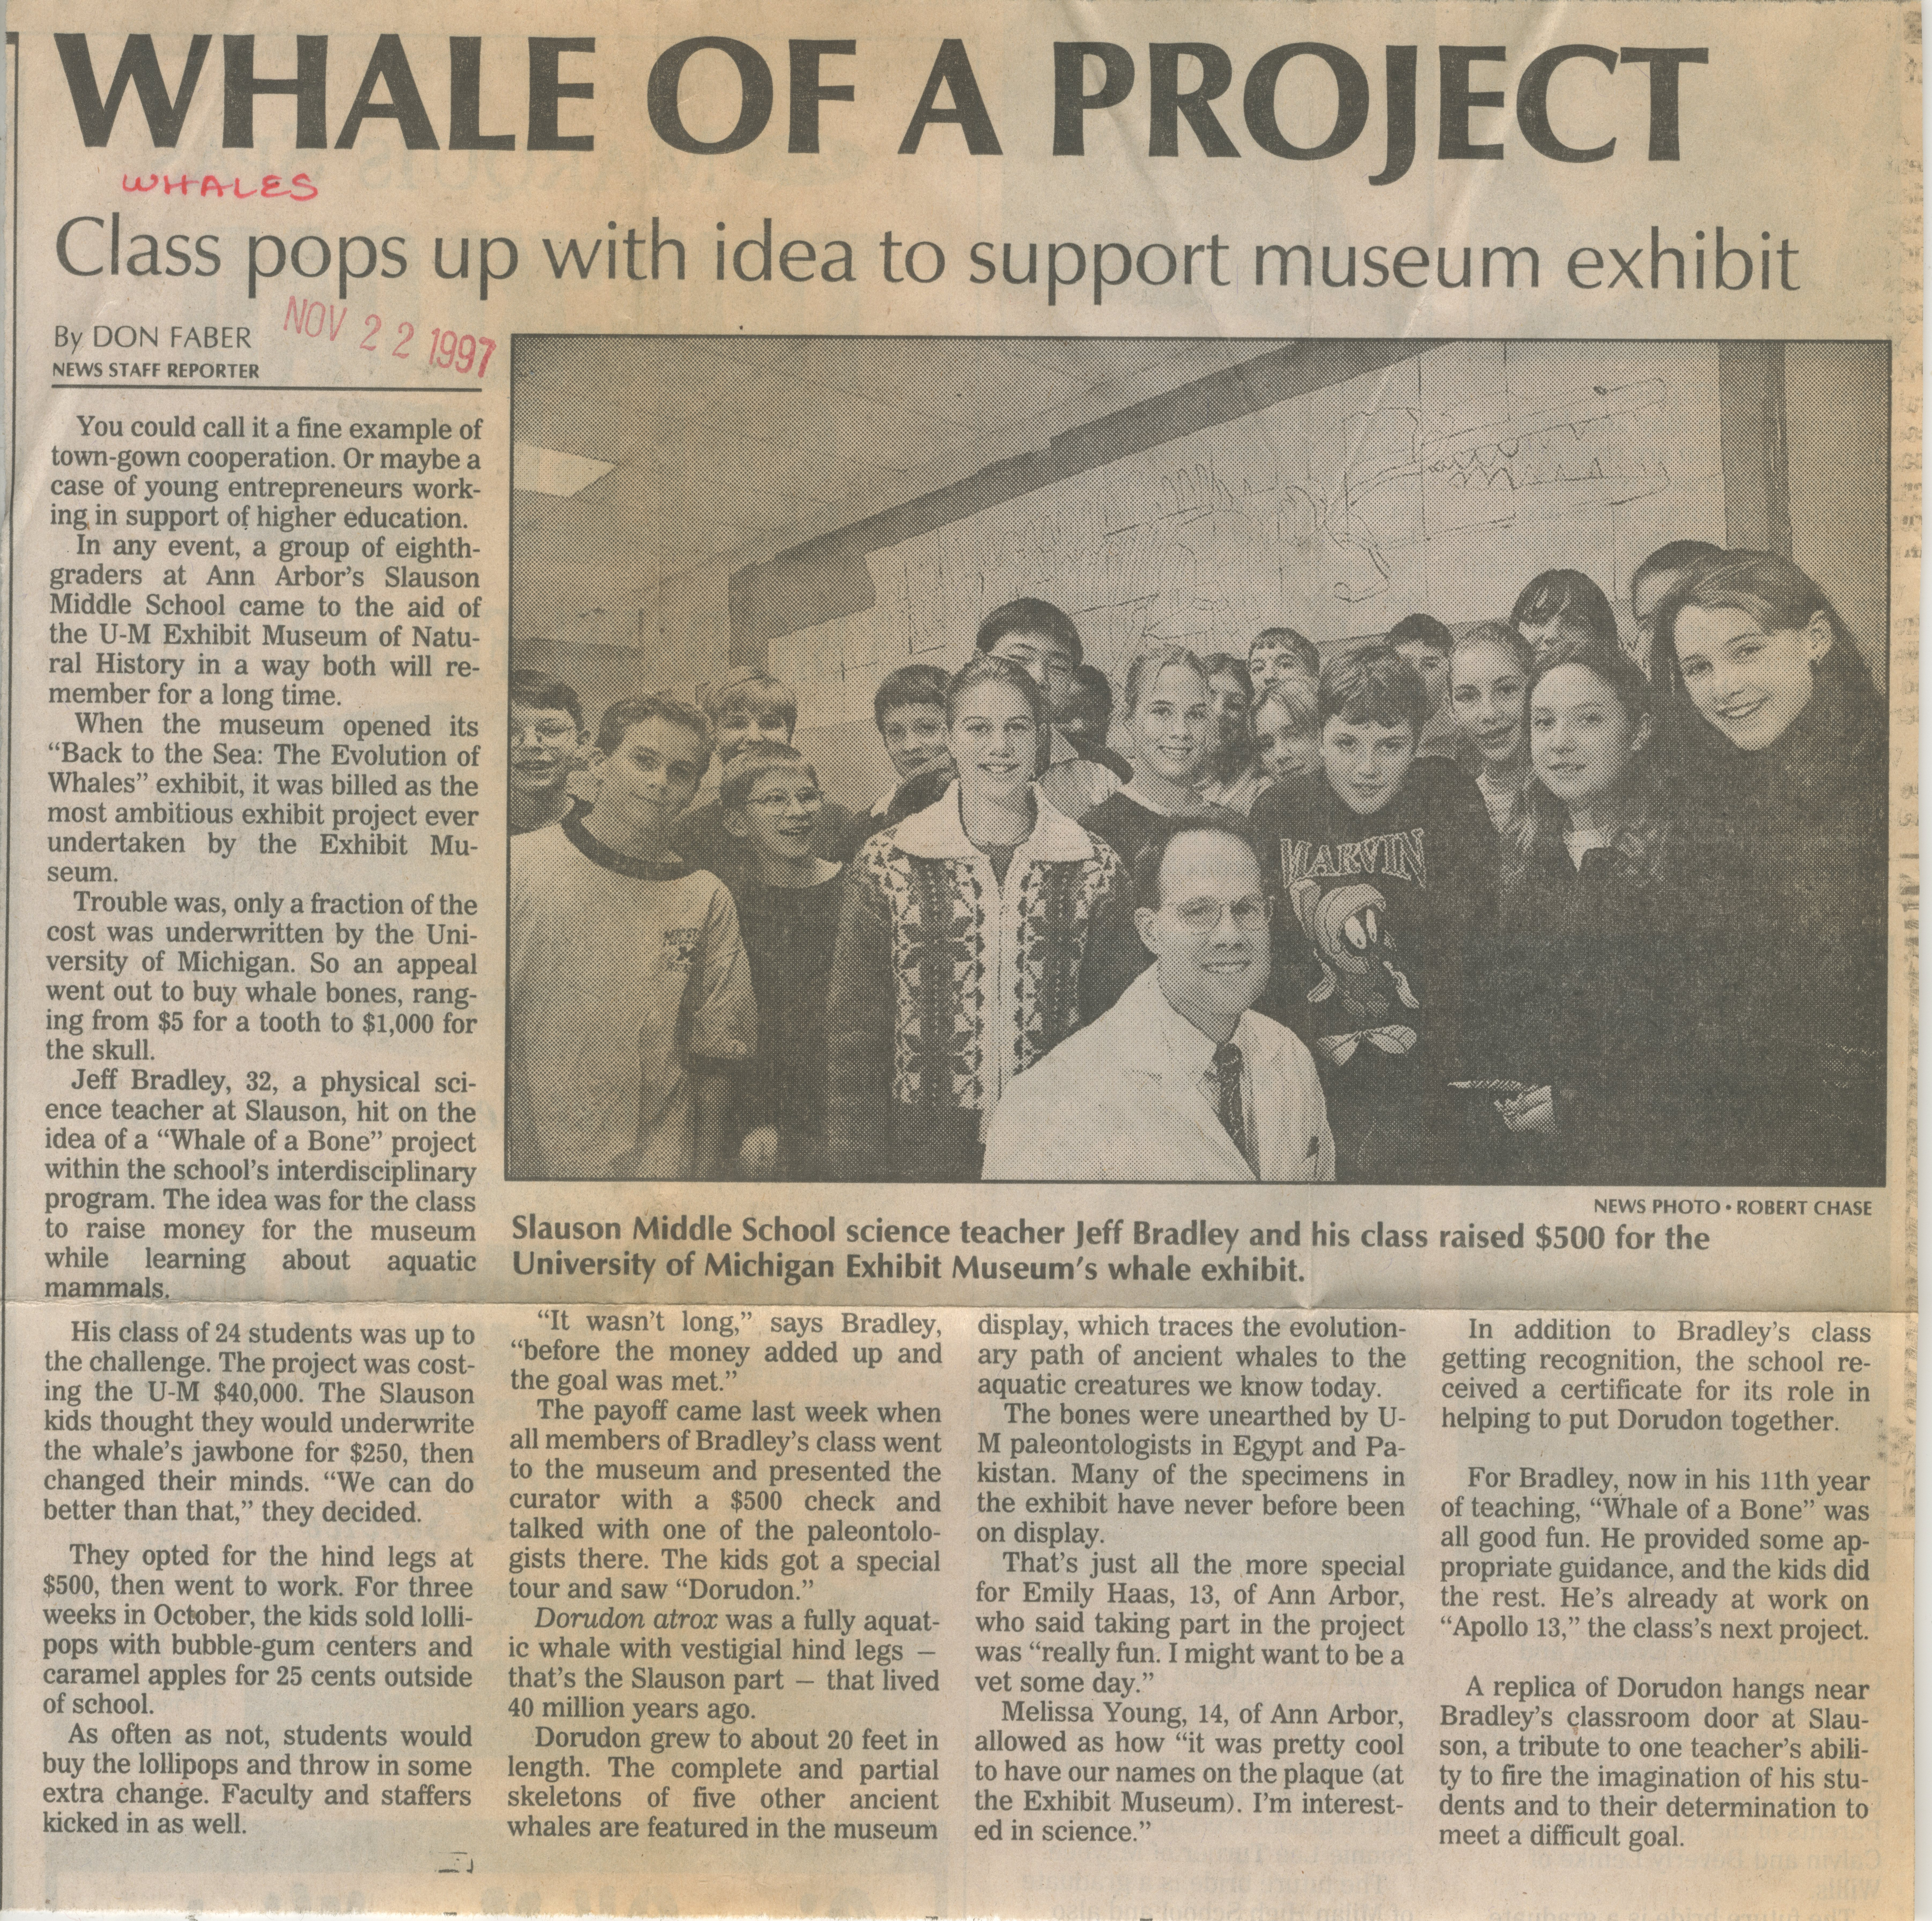 Whale Of A Project image